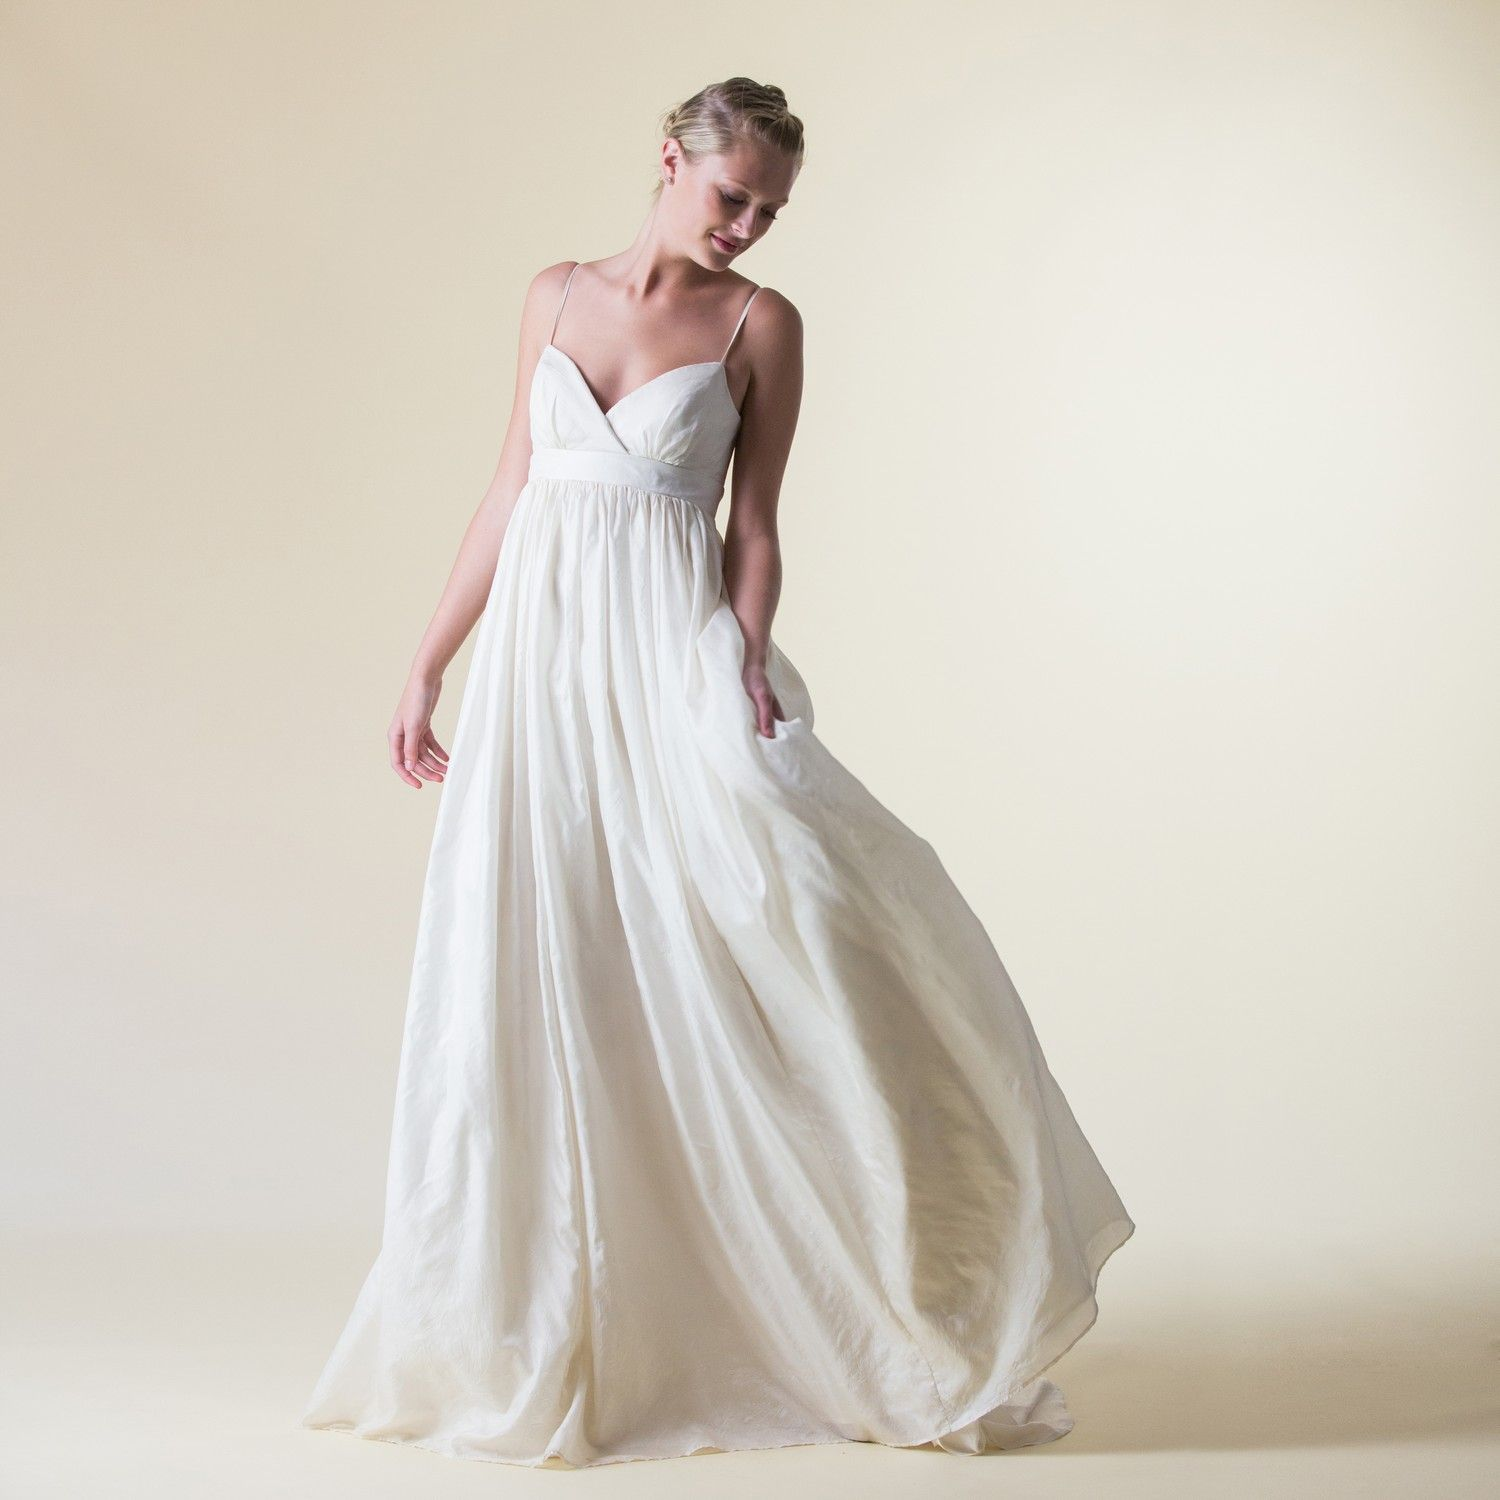 An exquisitely ethical wedding dress in heirloom eco silk the